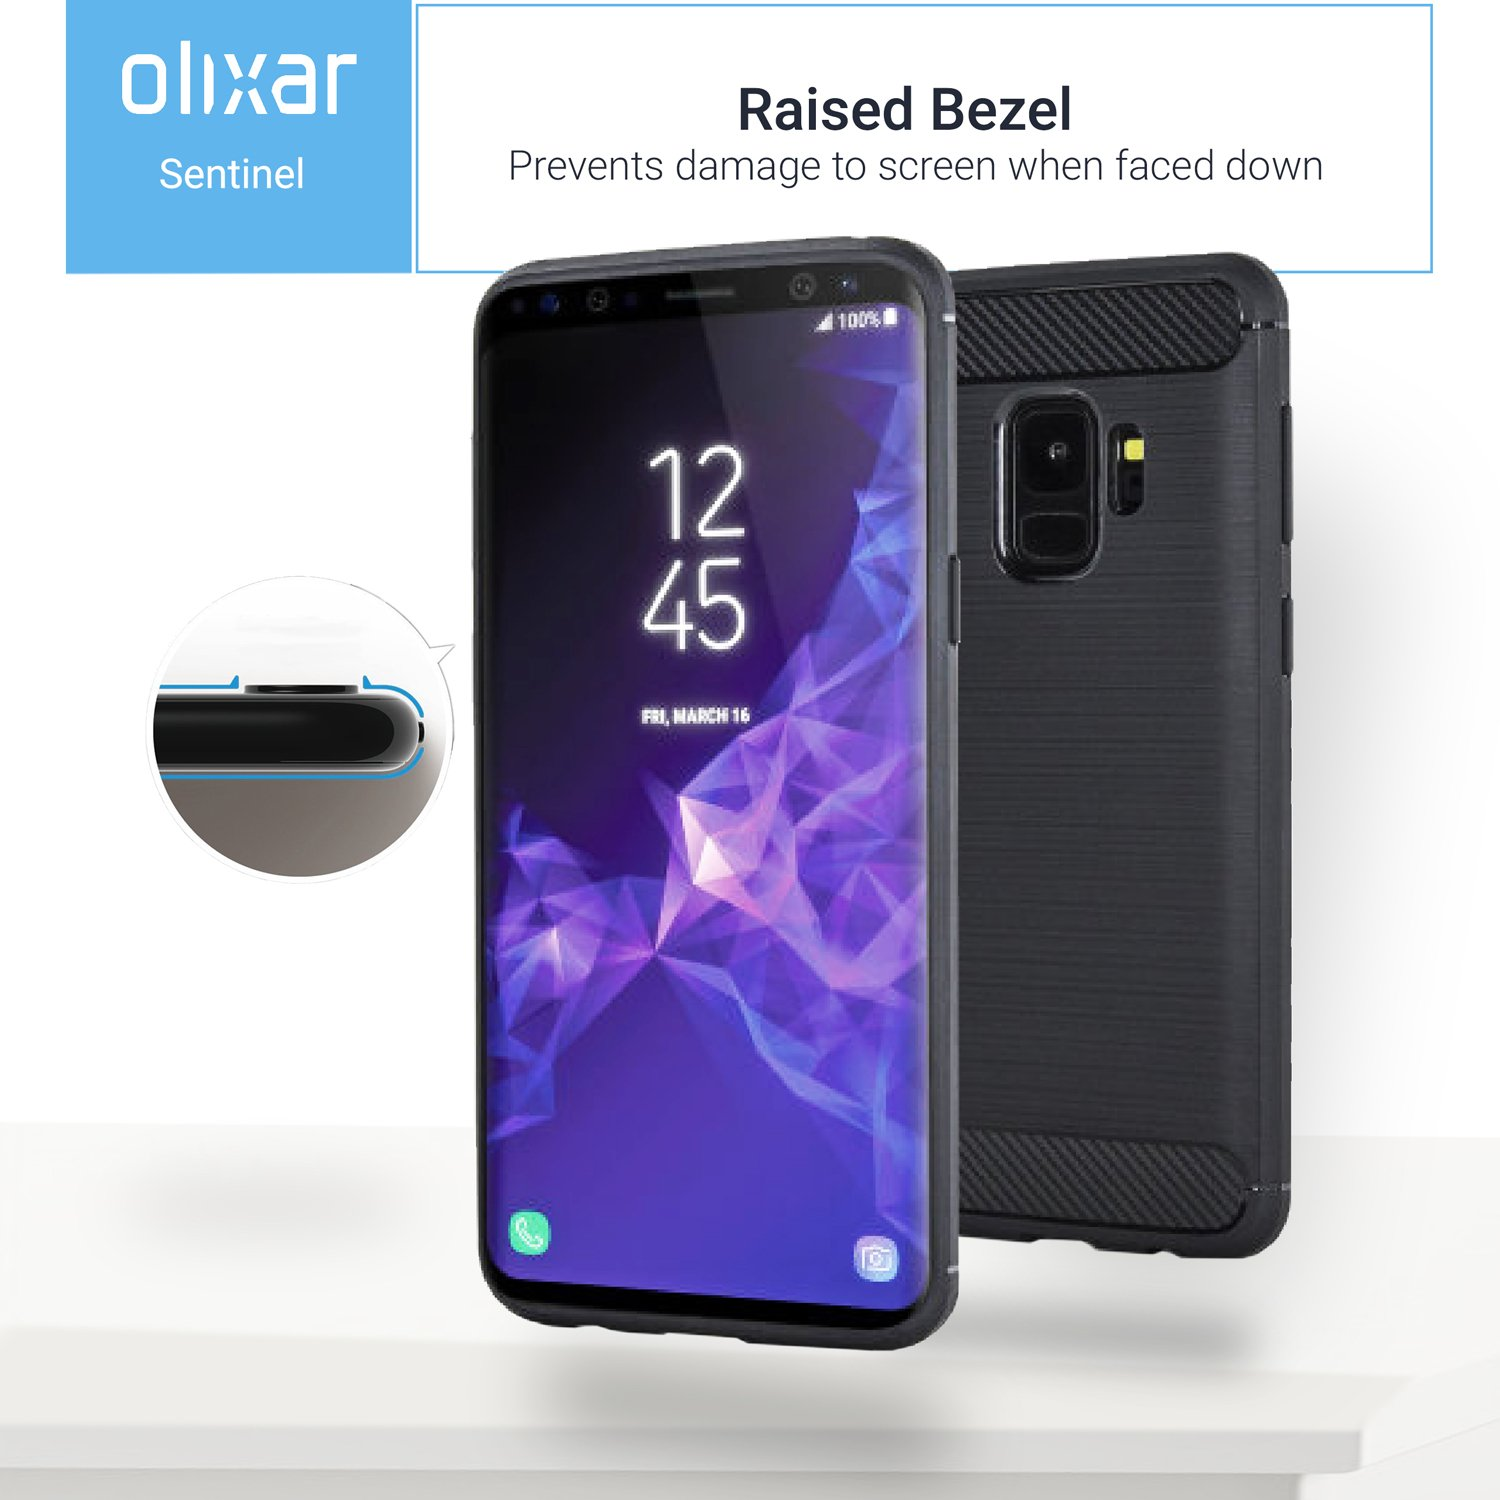 purchase cheap a5b98 92bc1 Samsung Galaxy S9 Case With Screen Protector - Olixar Sentinel - Unboxed